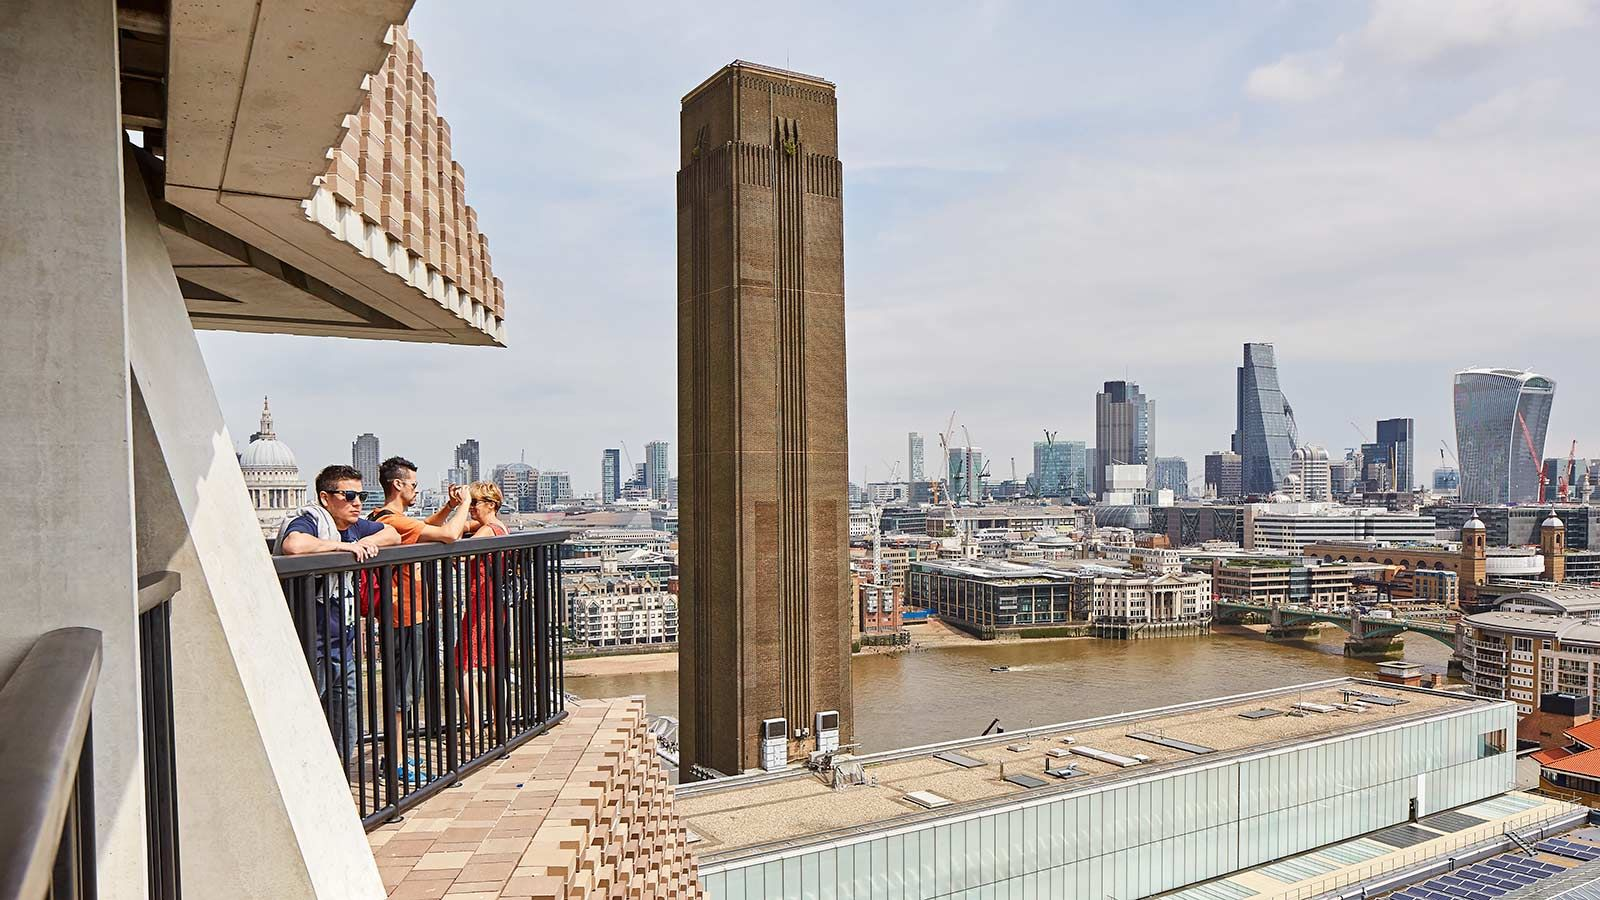 London's South Bank View From Tate Modern Gallery - Mace Group